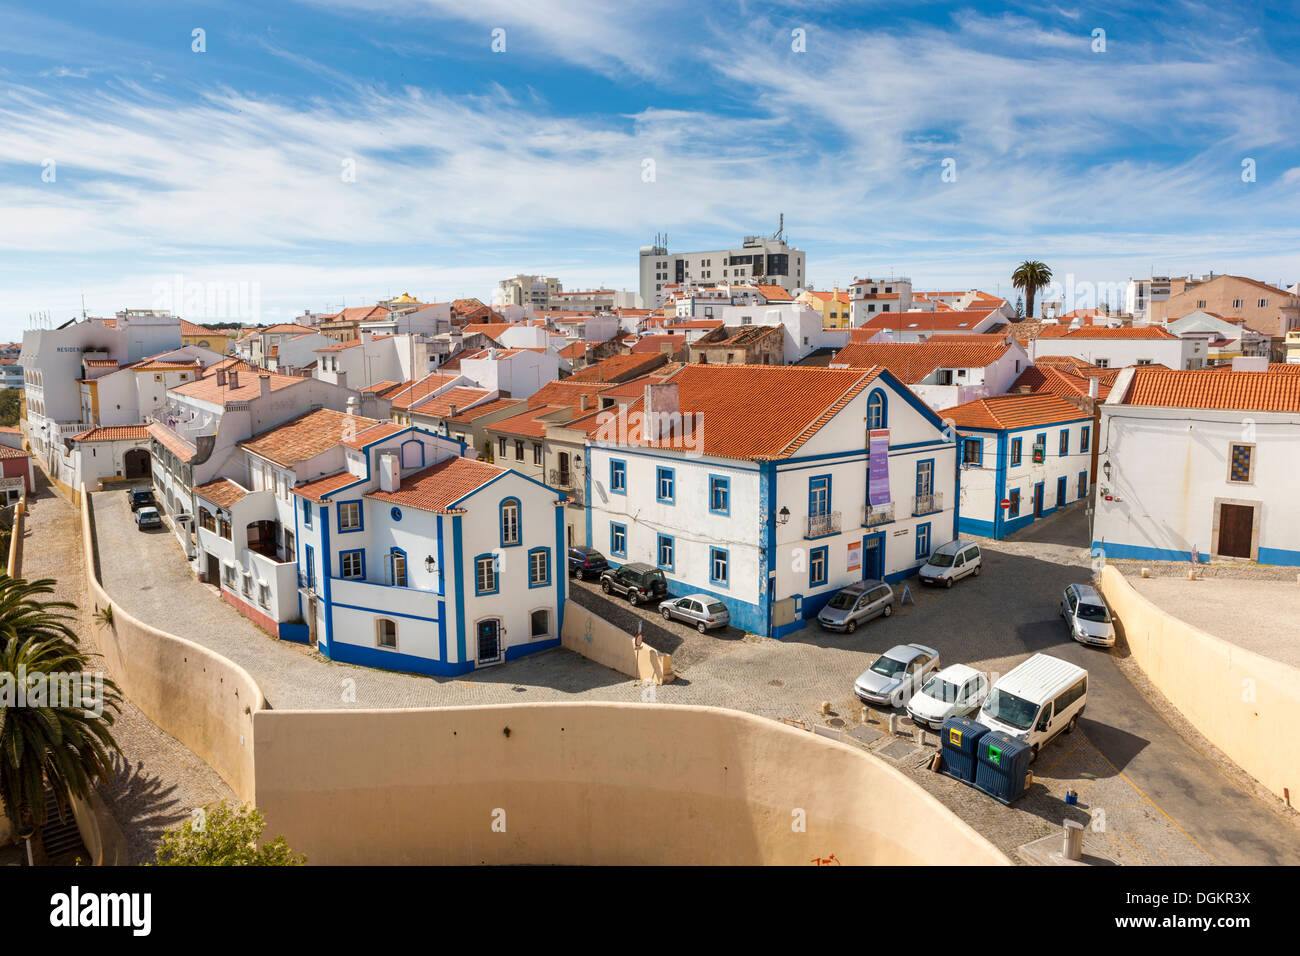 The old quarter of Sines showing an example of the older architecture. - Stock Image